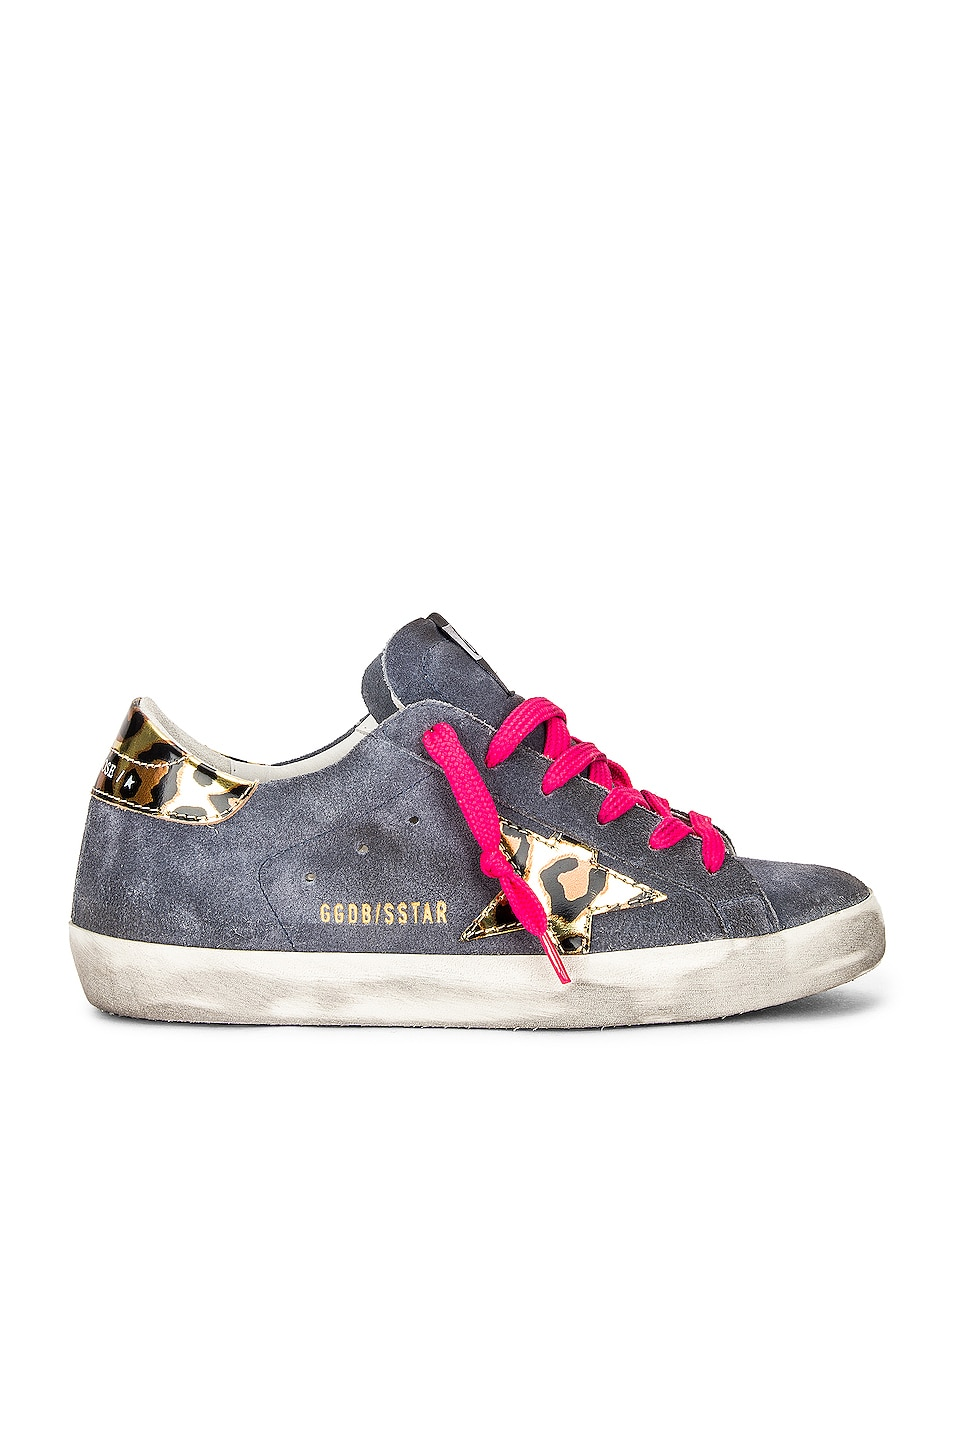 Image 1 of Golden Goose Superstar Sneaker in Grey Blue, Gold, Black & Leopard